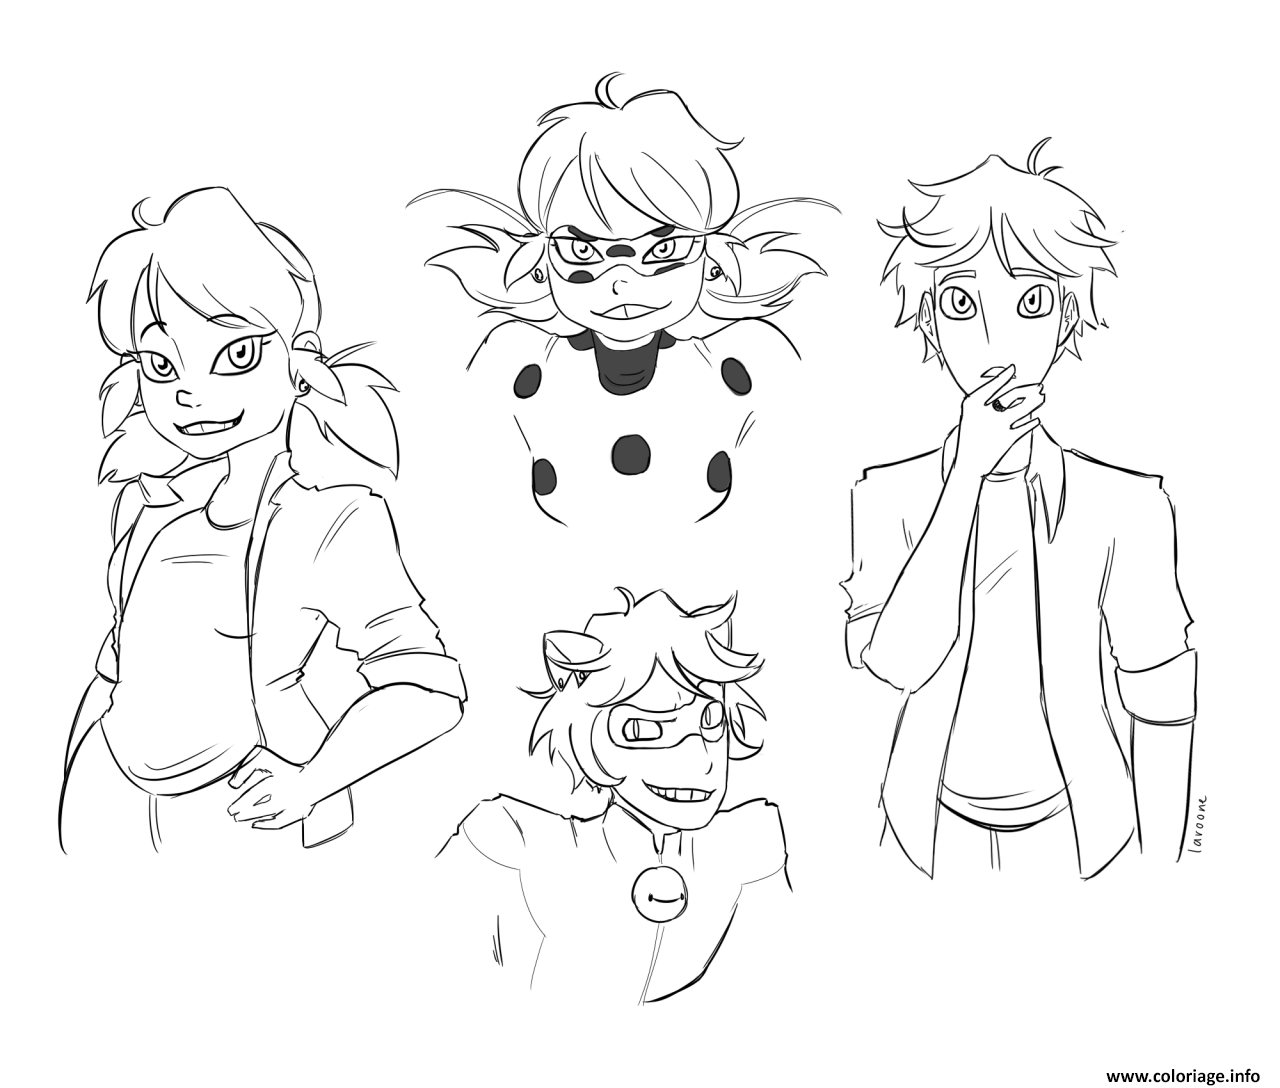 Coloriage personnages demiraculous ladybug chat noir for Coloring pages ladybug